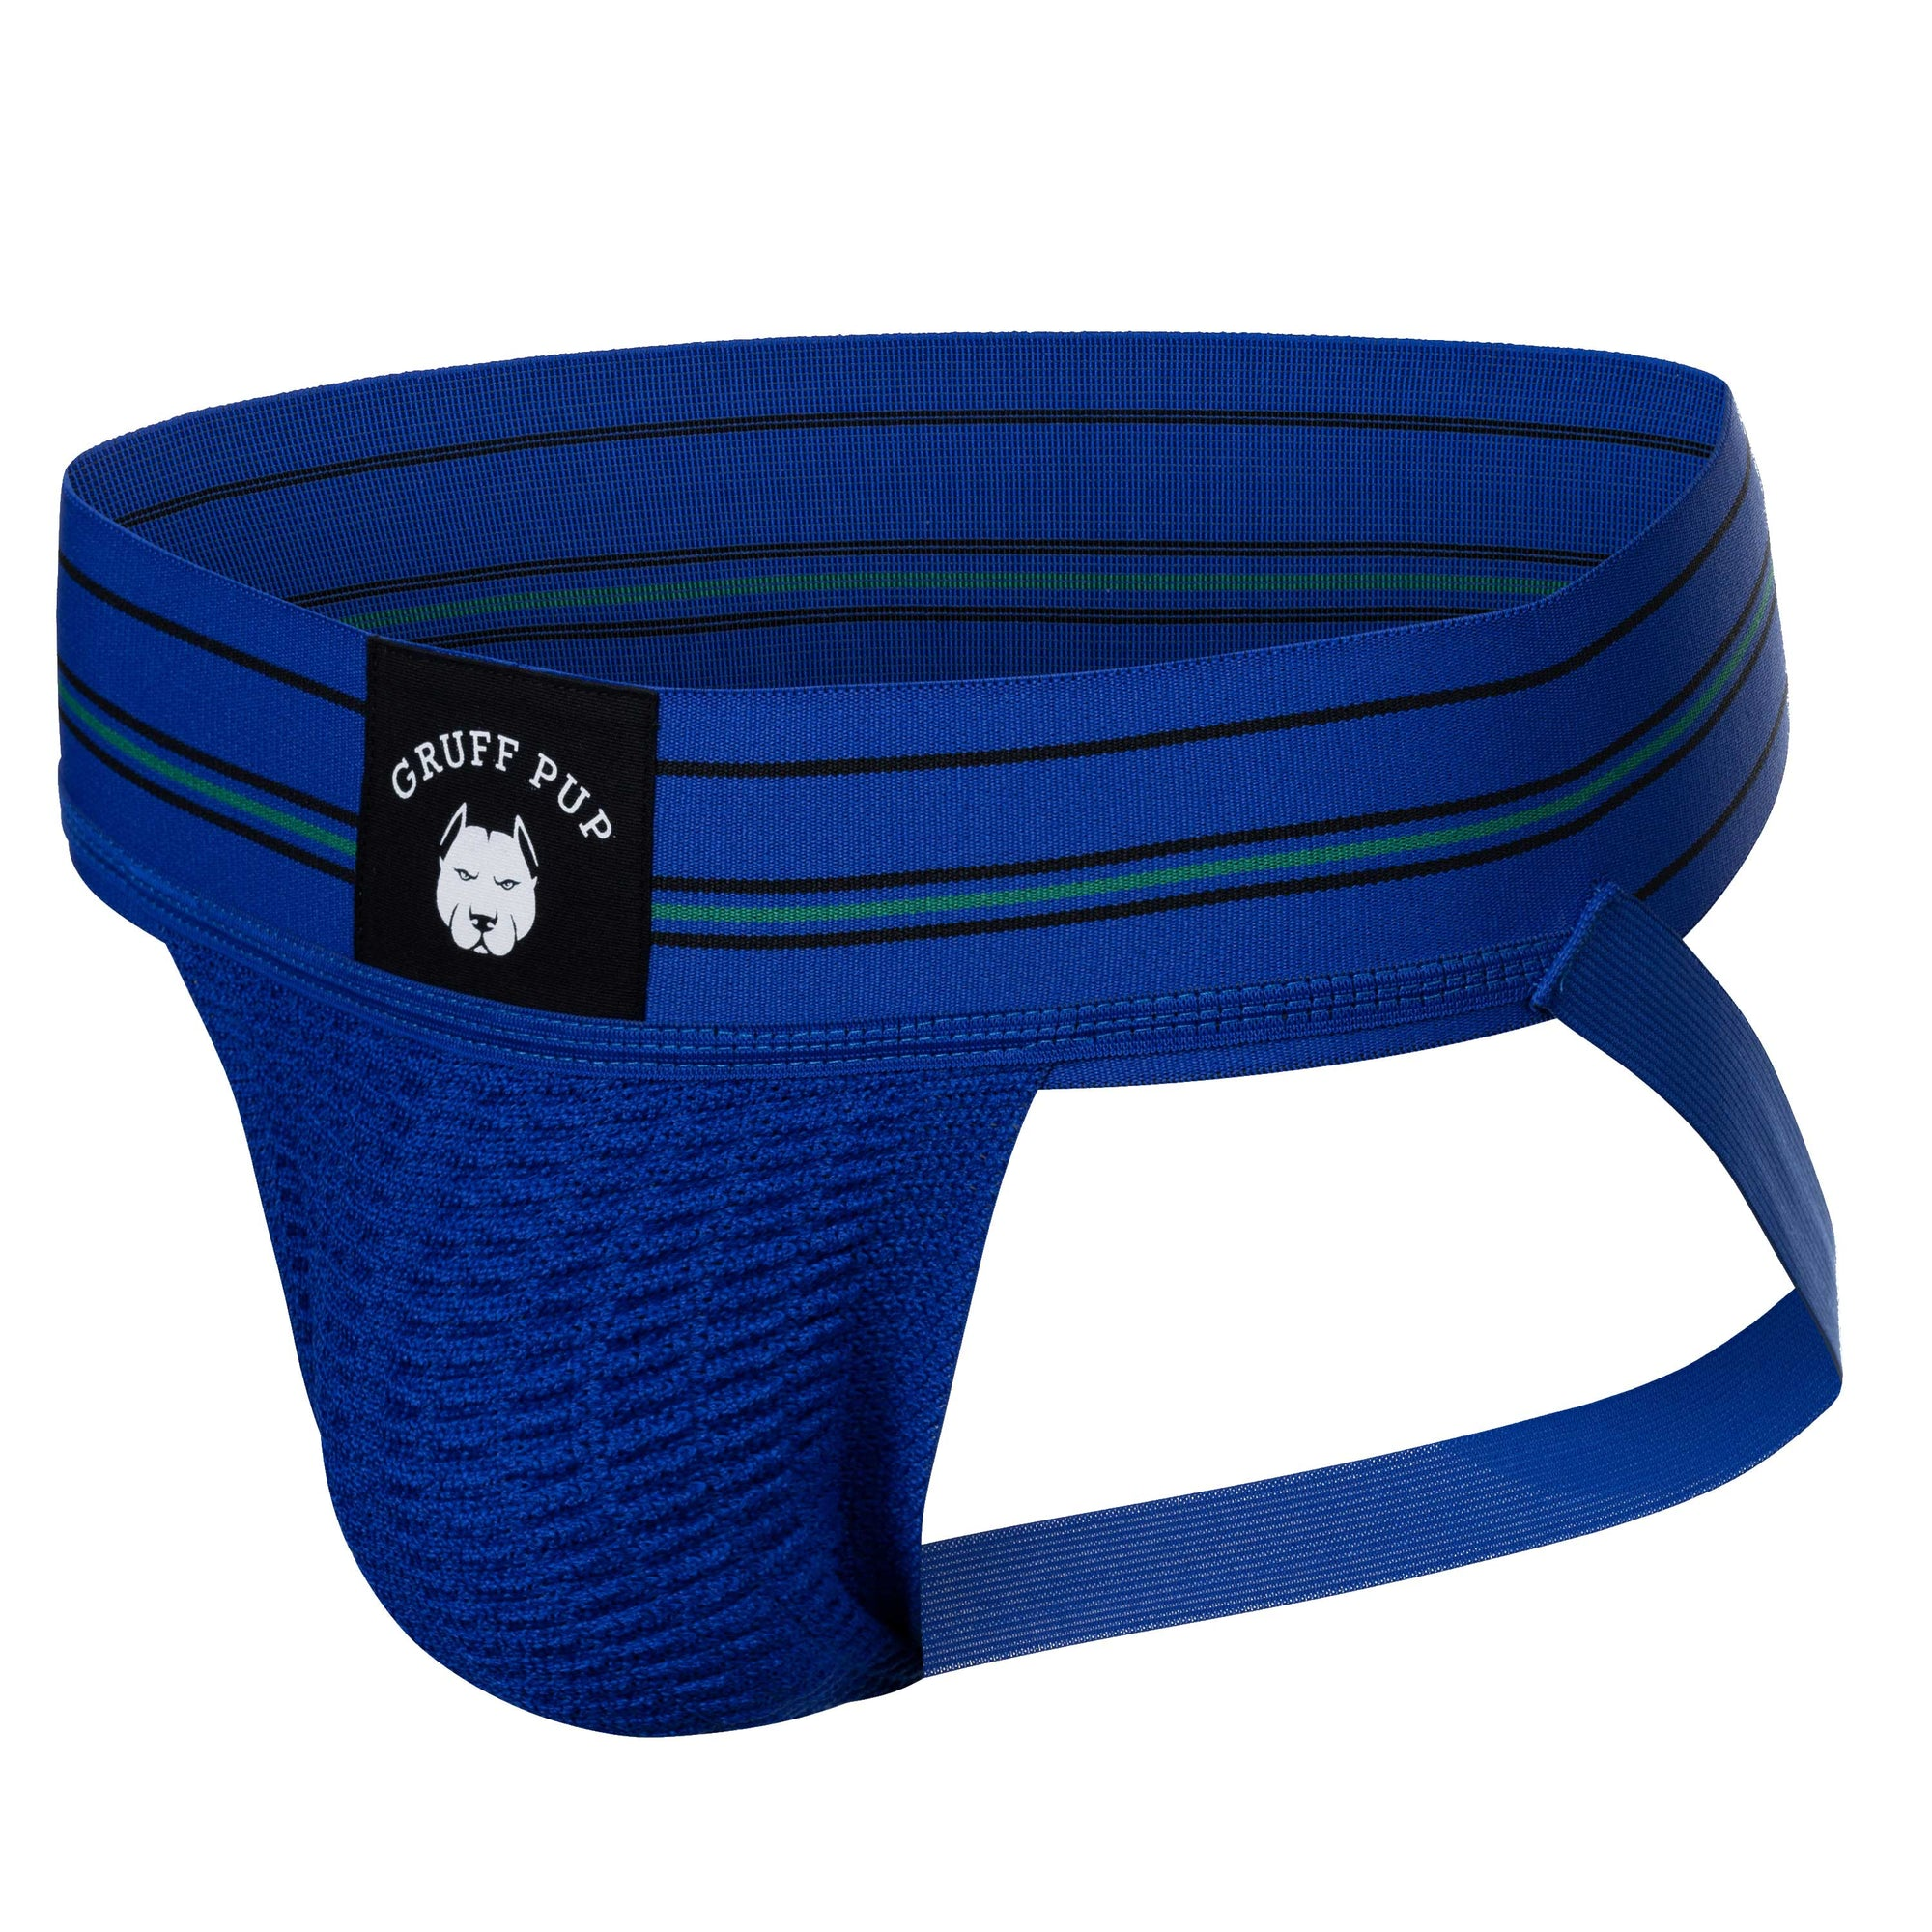 Gruff Pup Quarterback Jock - Blue Striped